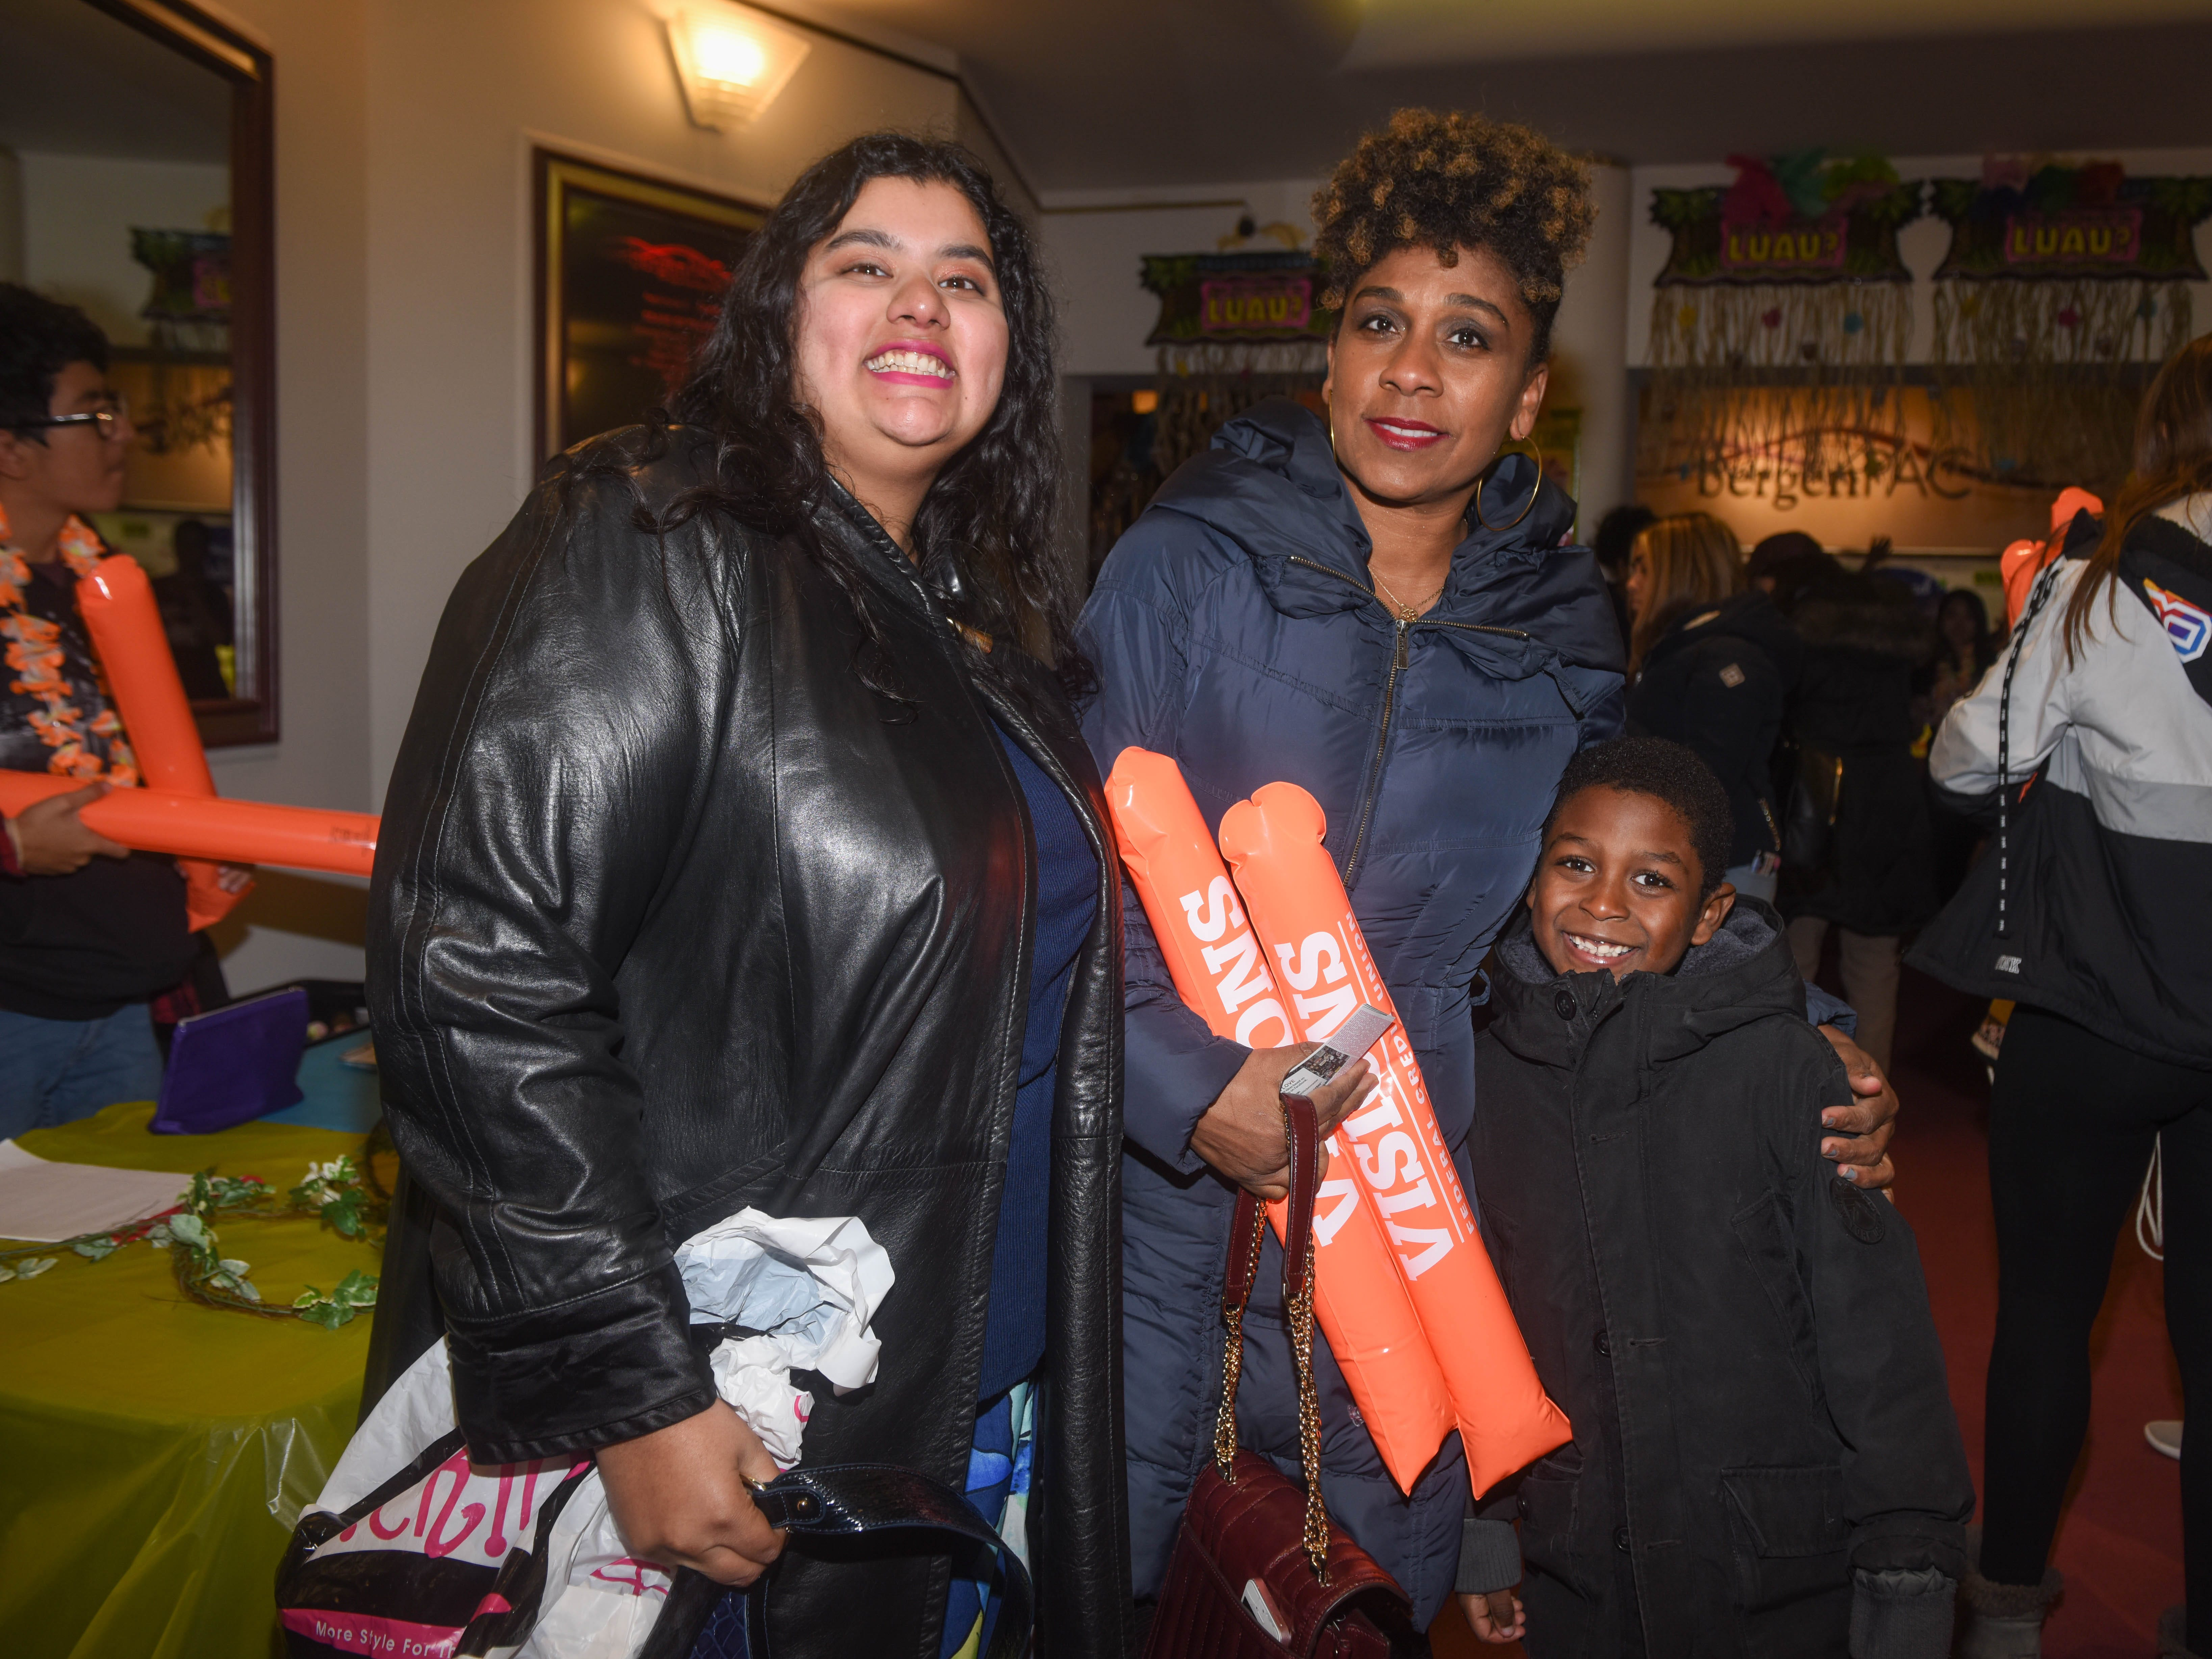 Aurora Ali, Georgia Browning and Remis. The 2019 Englewood Idol was held at bergenPAC theater. The singing competition is open to any high school student who currently lives or goes to school in Englewood, NJ. This years winner was Genesis Capellan. 01/11/2019